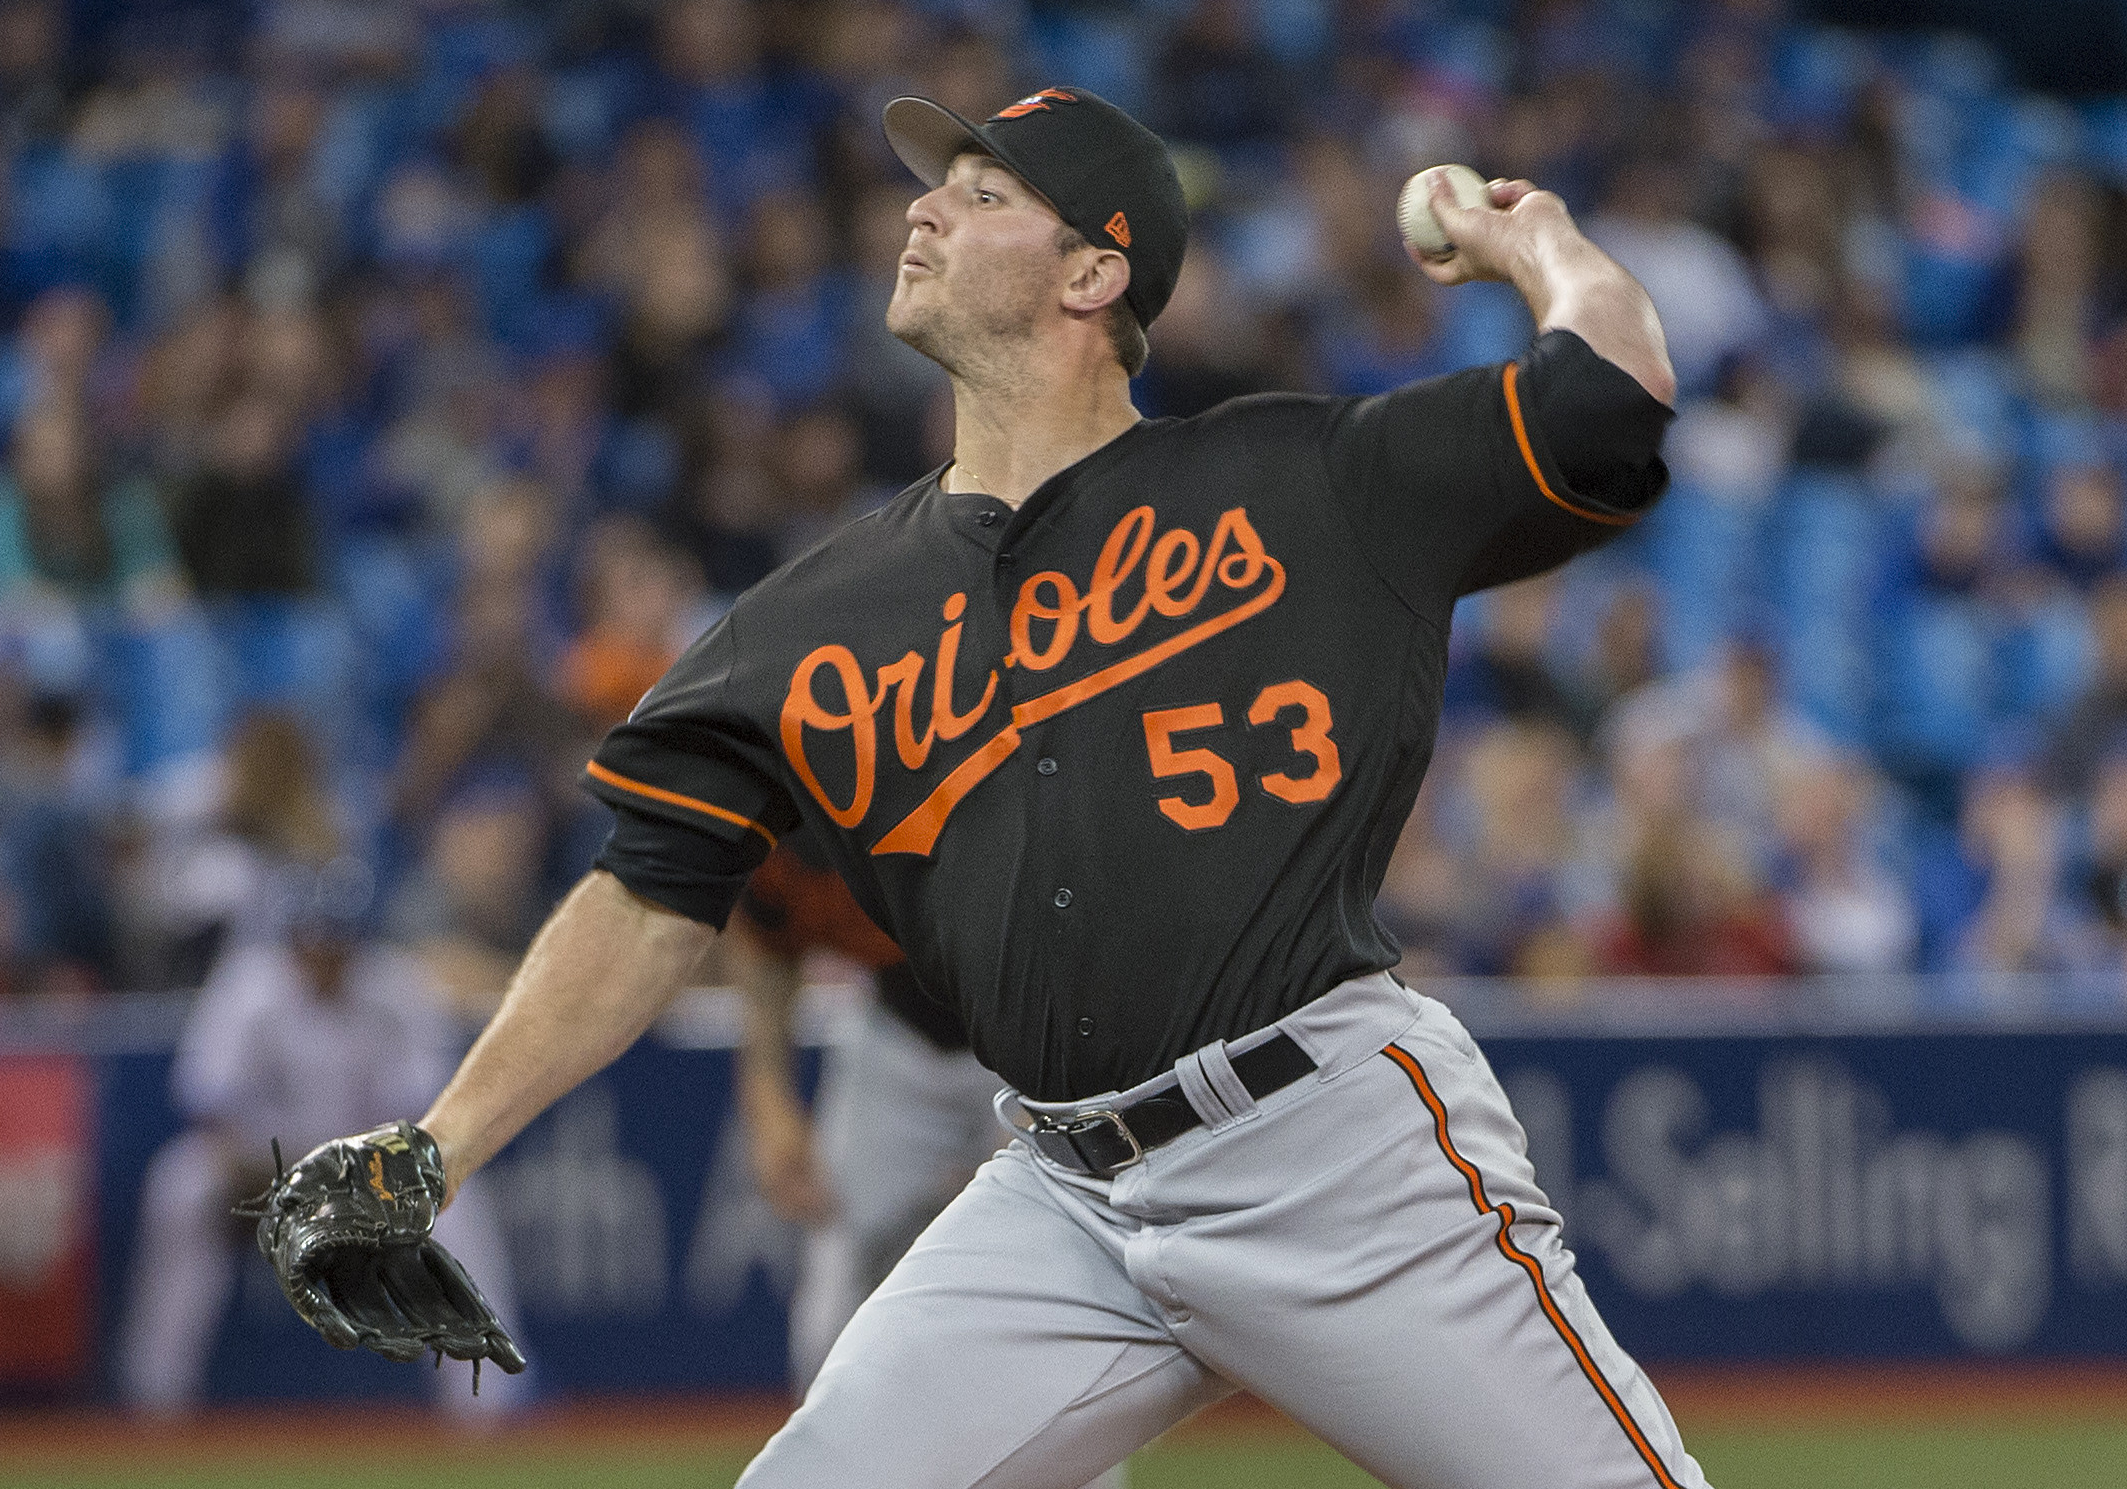 10011554-mlb-baltimore-orioles-at-toronto-blue-jays